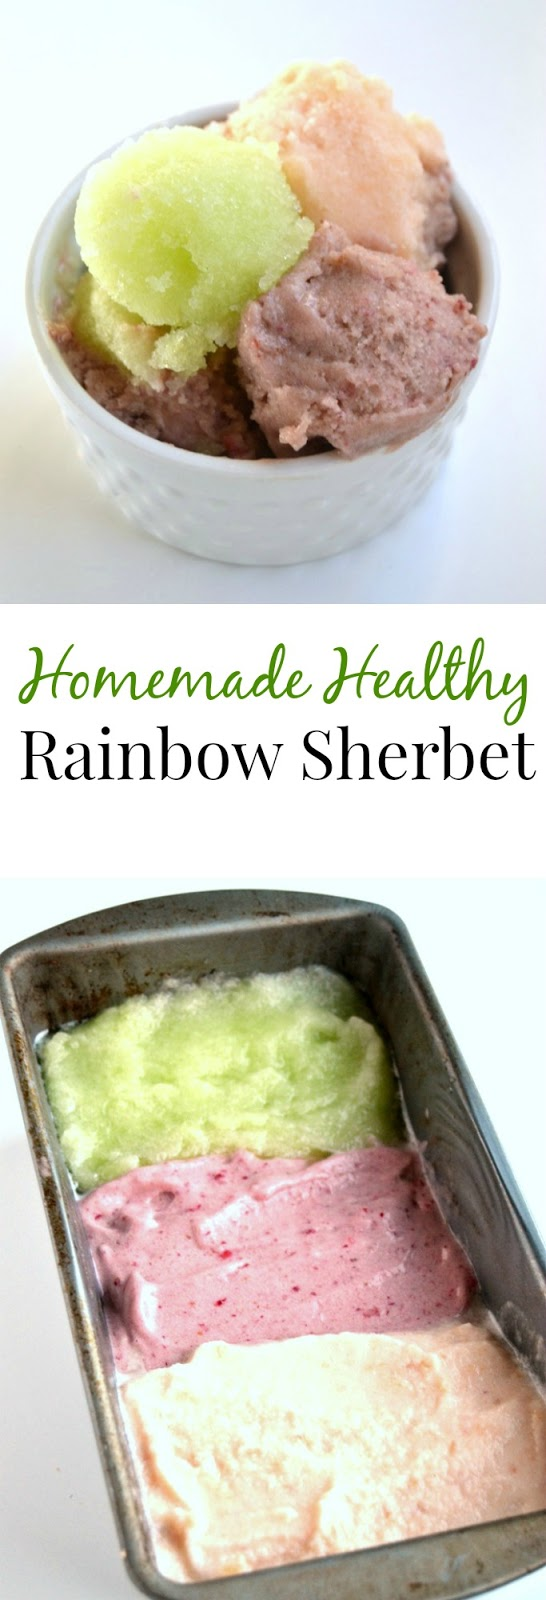 Homemade Healthy Rainbow Sherbet Is Made With Fresh Cantaloupe Honeydew Melon And Strawberries For A